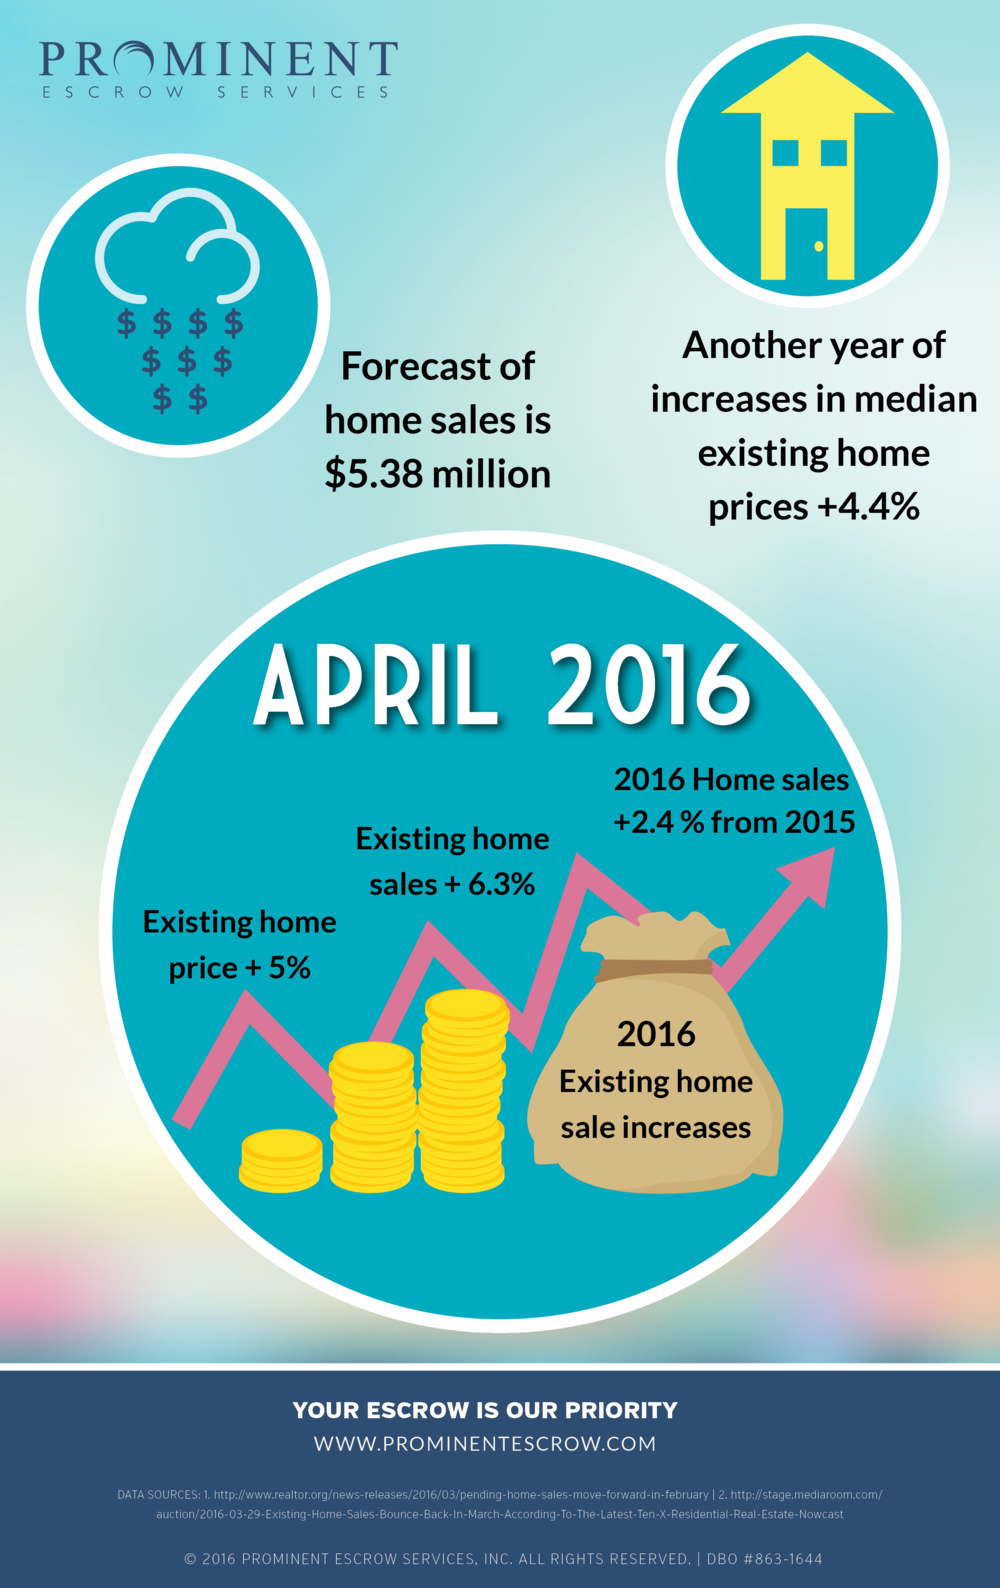 4-1-16 Another-forecast-growth-in-home-sales.png